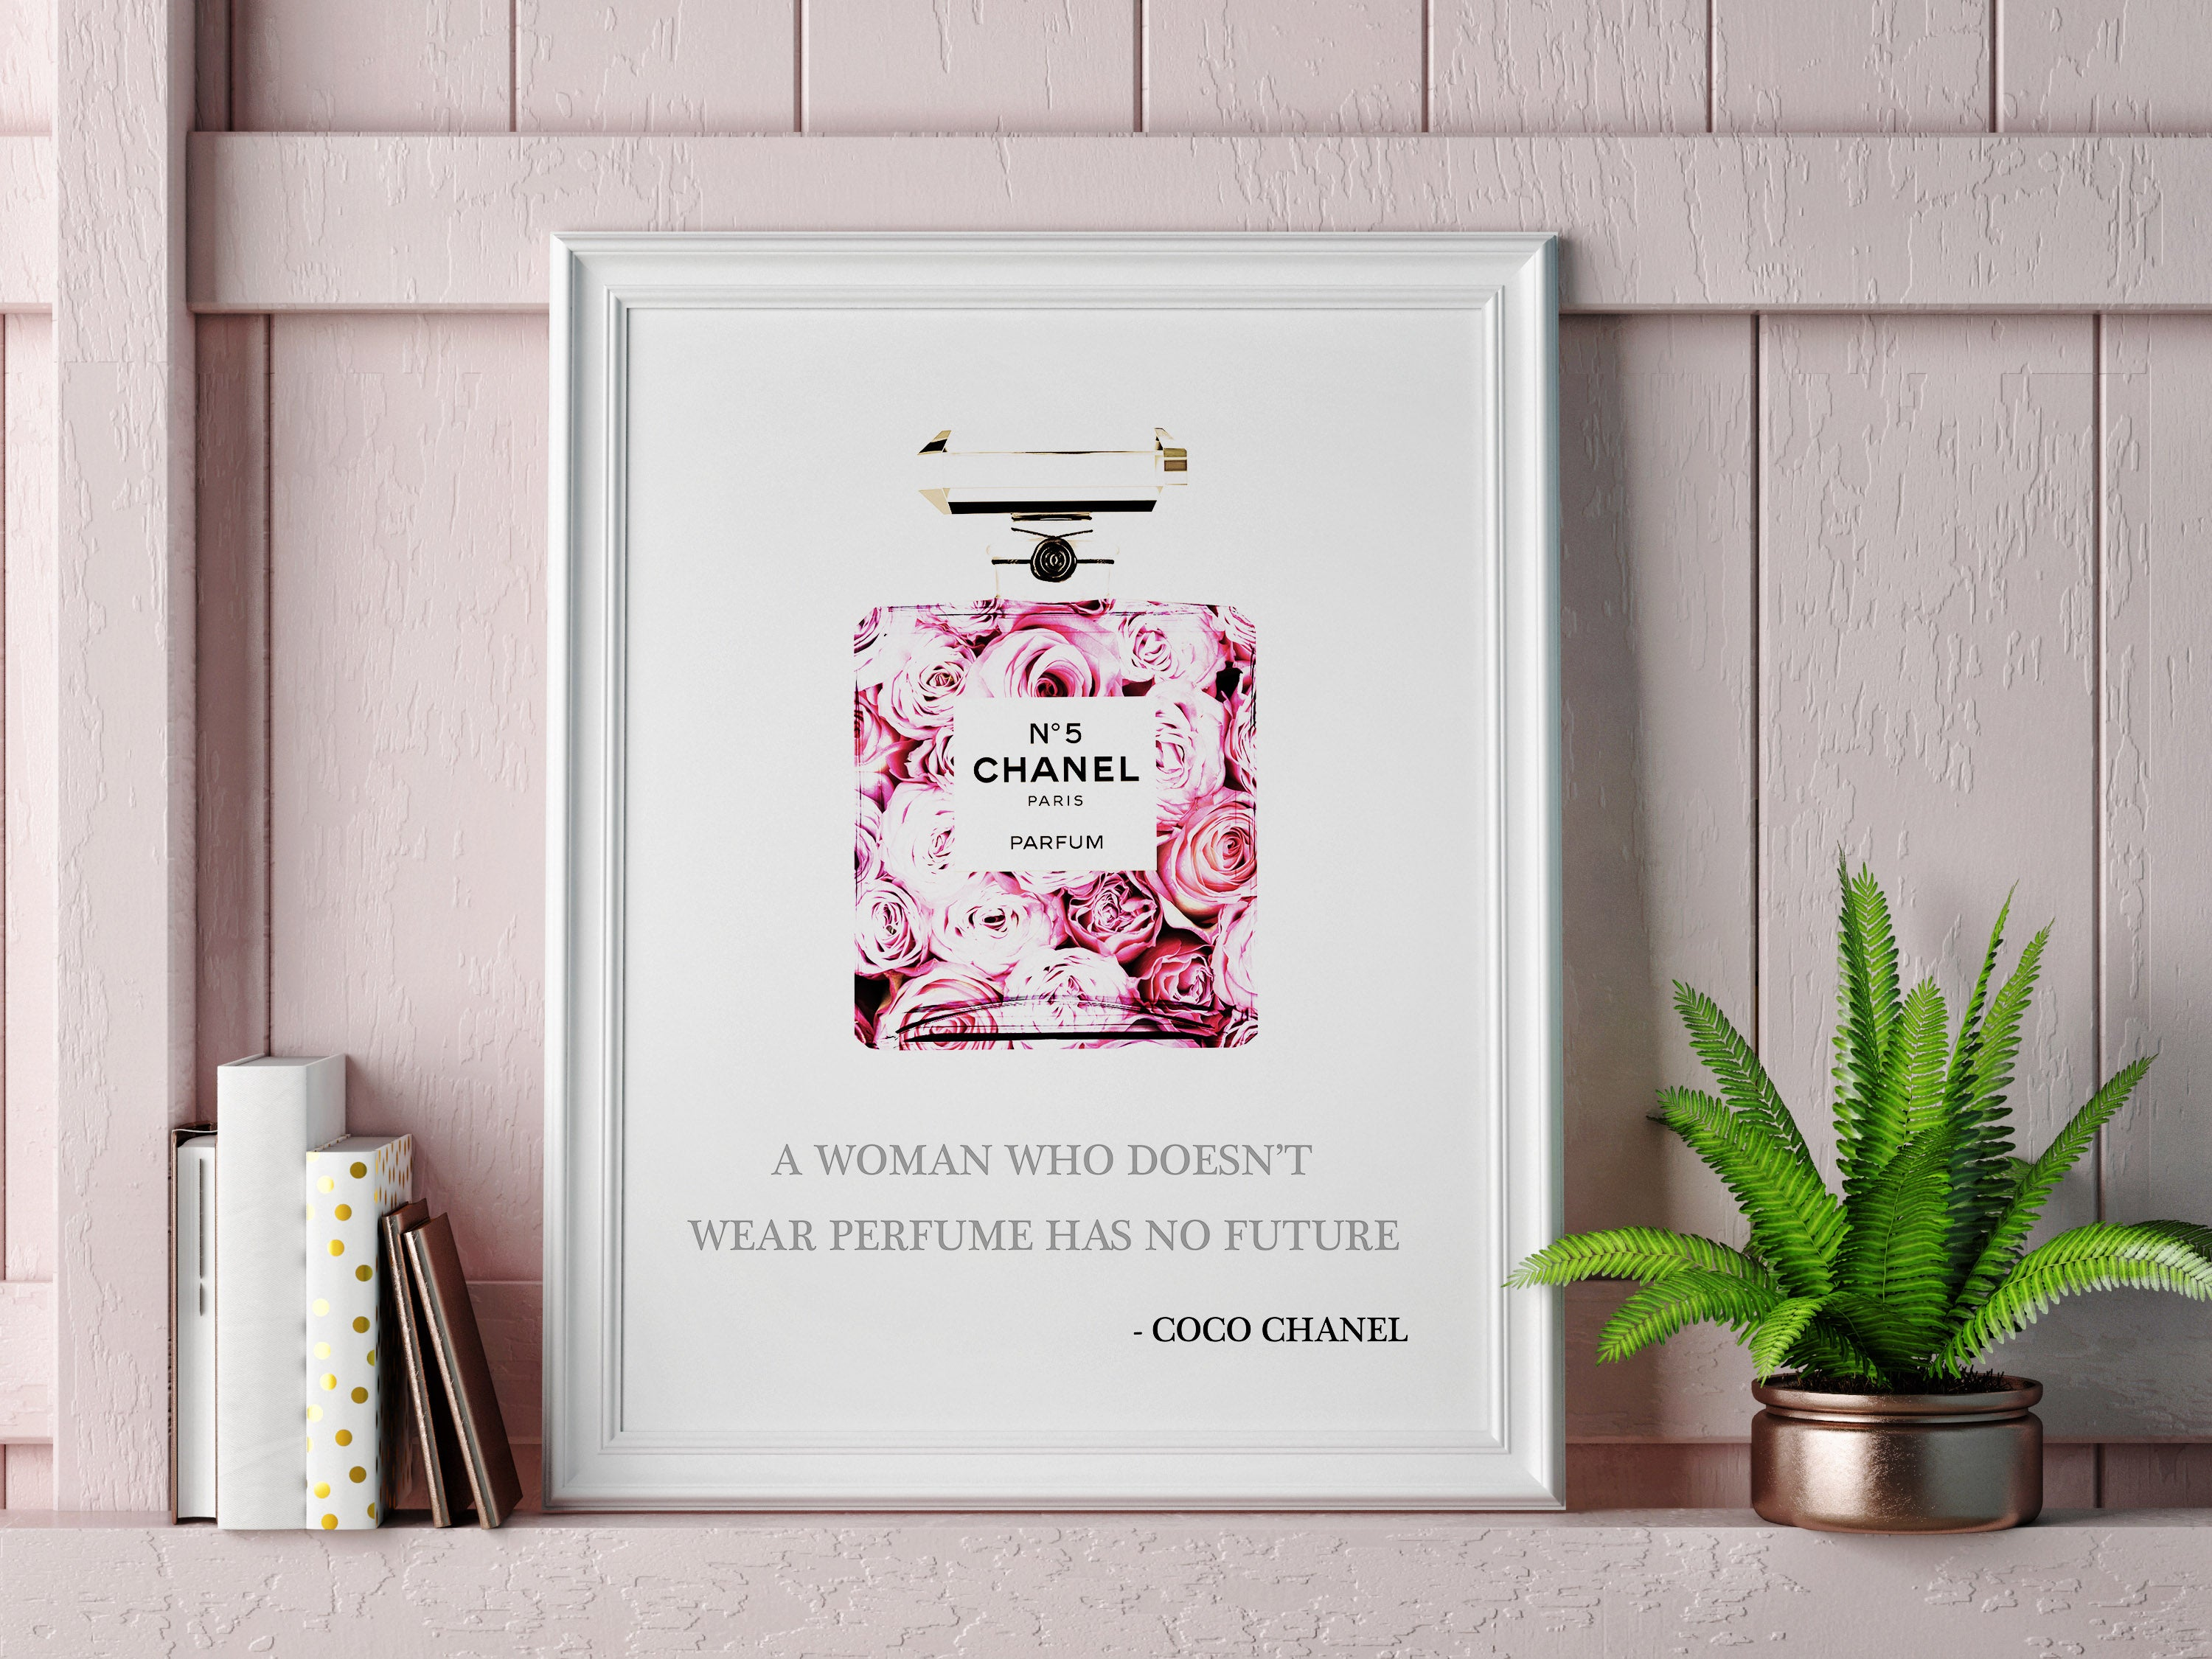 8b1395ffd924 Coco chanel quote print perfume bottle. A woman who doesn't wear perfume  has. Coco chanel quote print perfume bottle. A woman who doesn't wear  perfume has